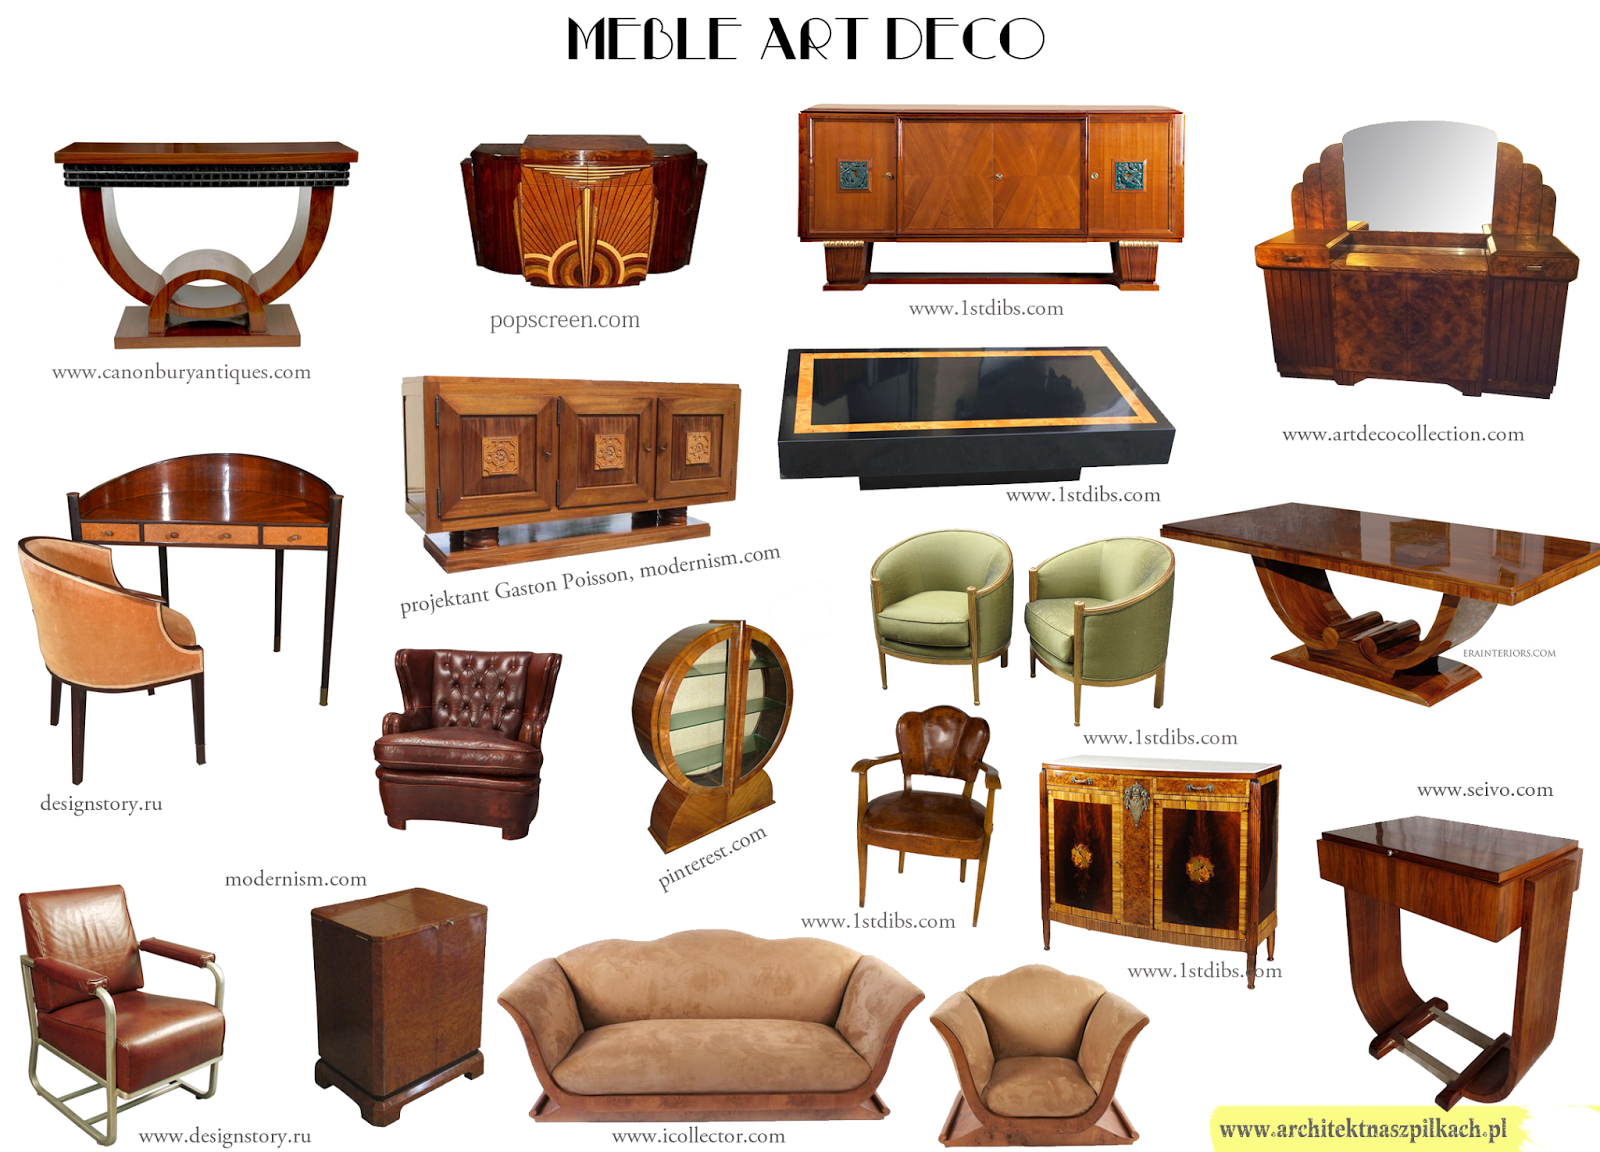 little miss architect interior design and architecture blog art deco beautiful furniture. Black Bedroom Furniture Sets. Home Design Ideas